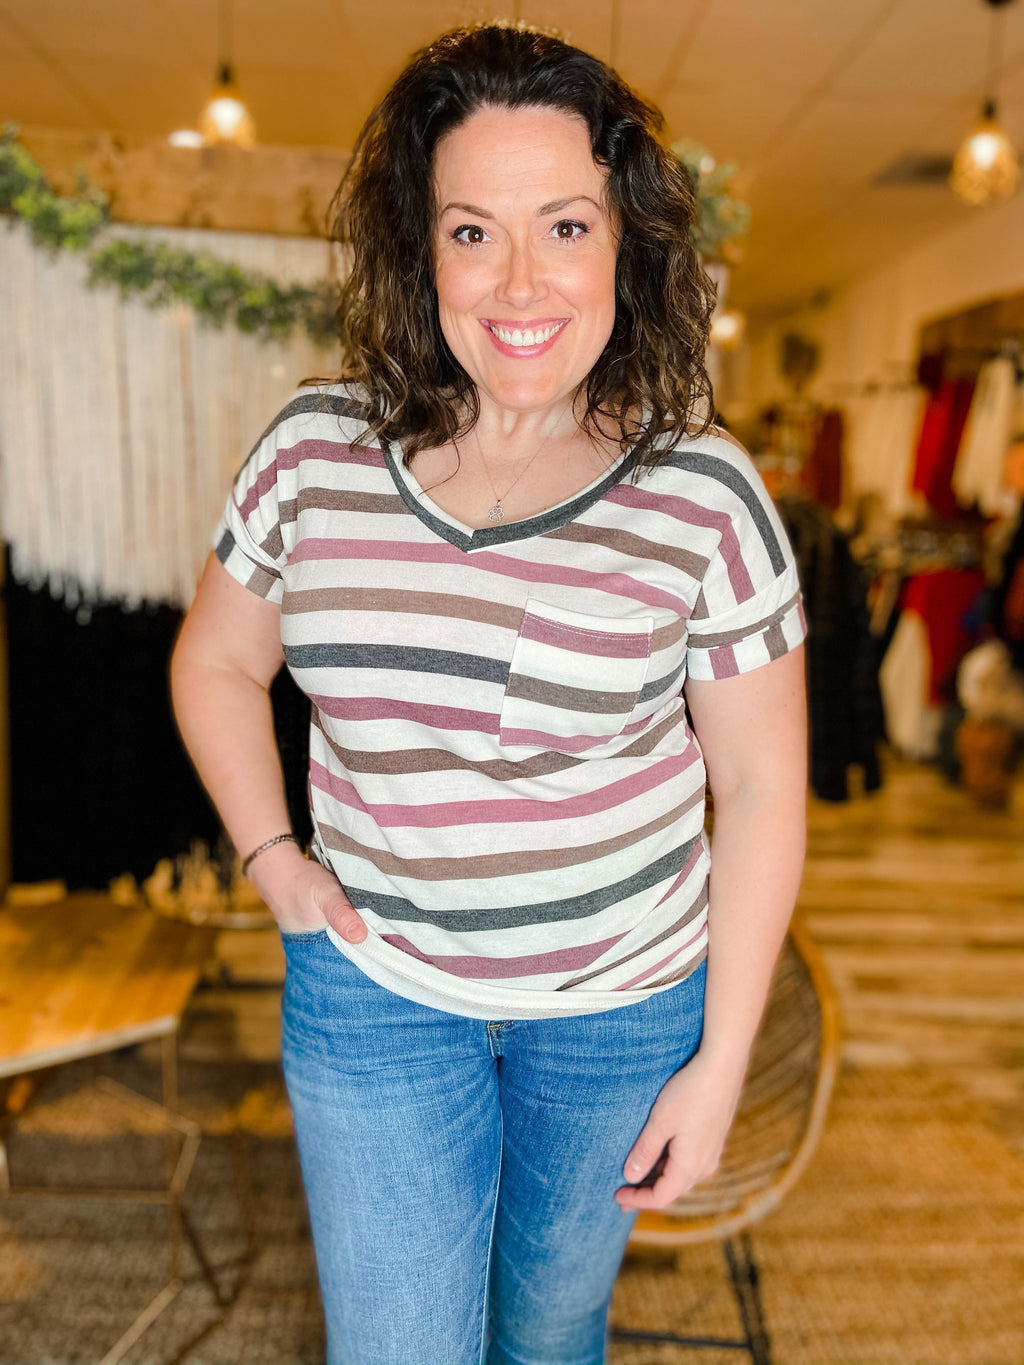 Ariel Striped V-neck Tee - Trendsetters Fashion Boutique